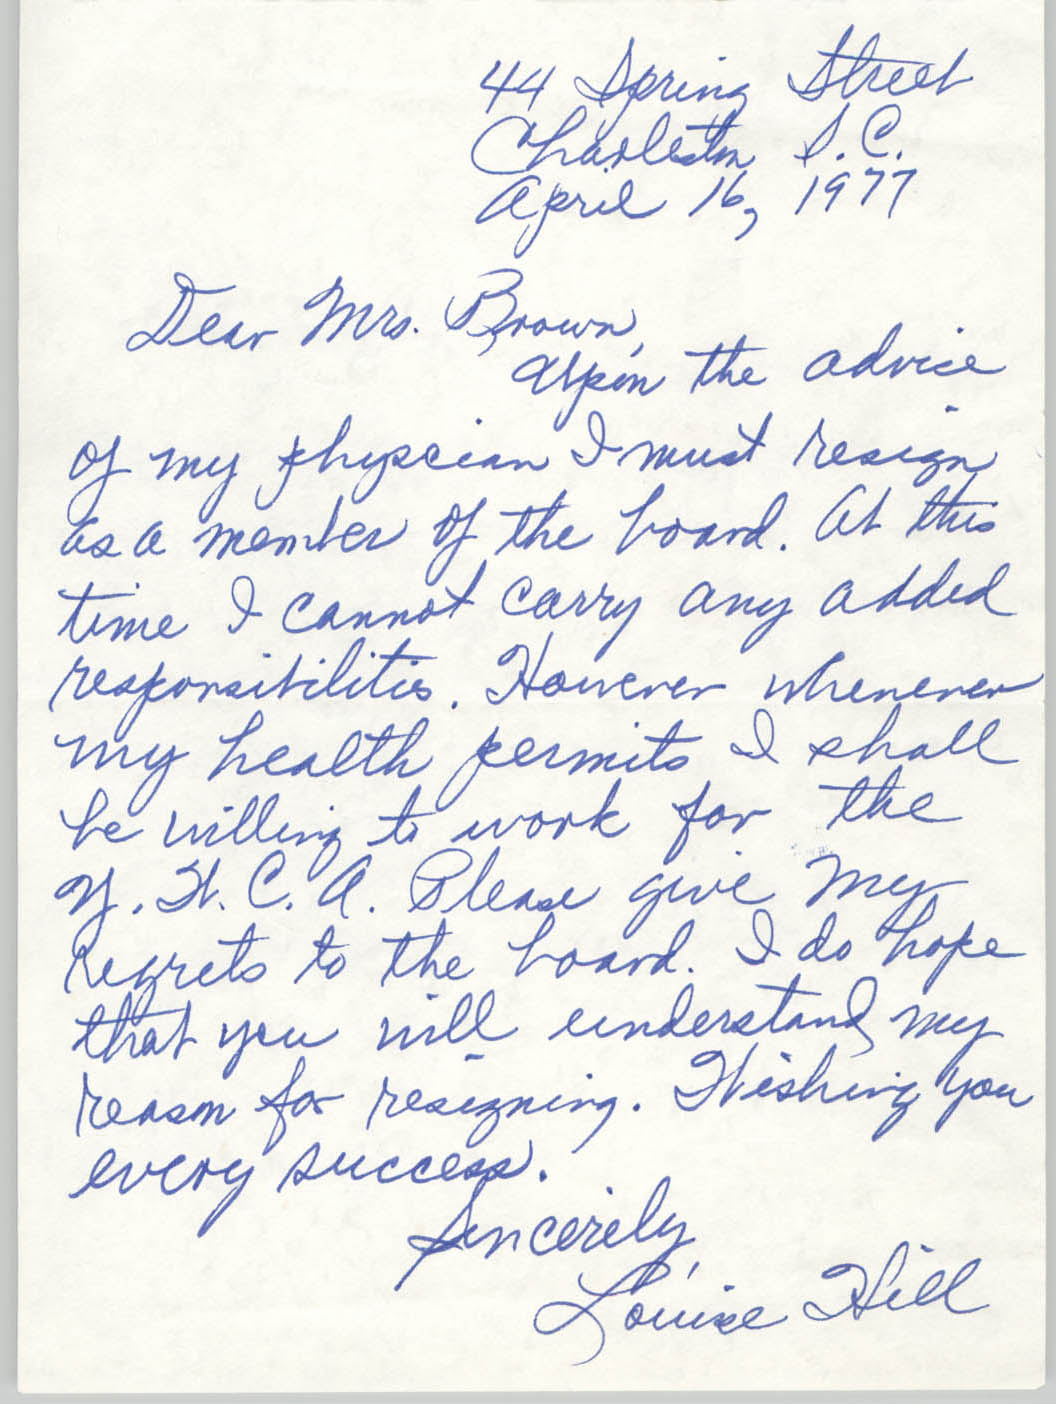 Letter from Louise Hill to